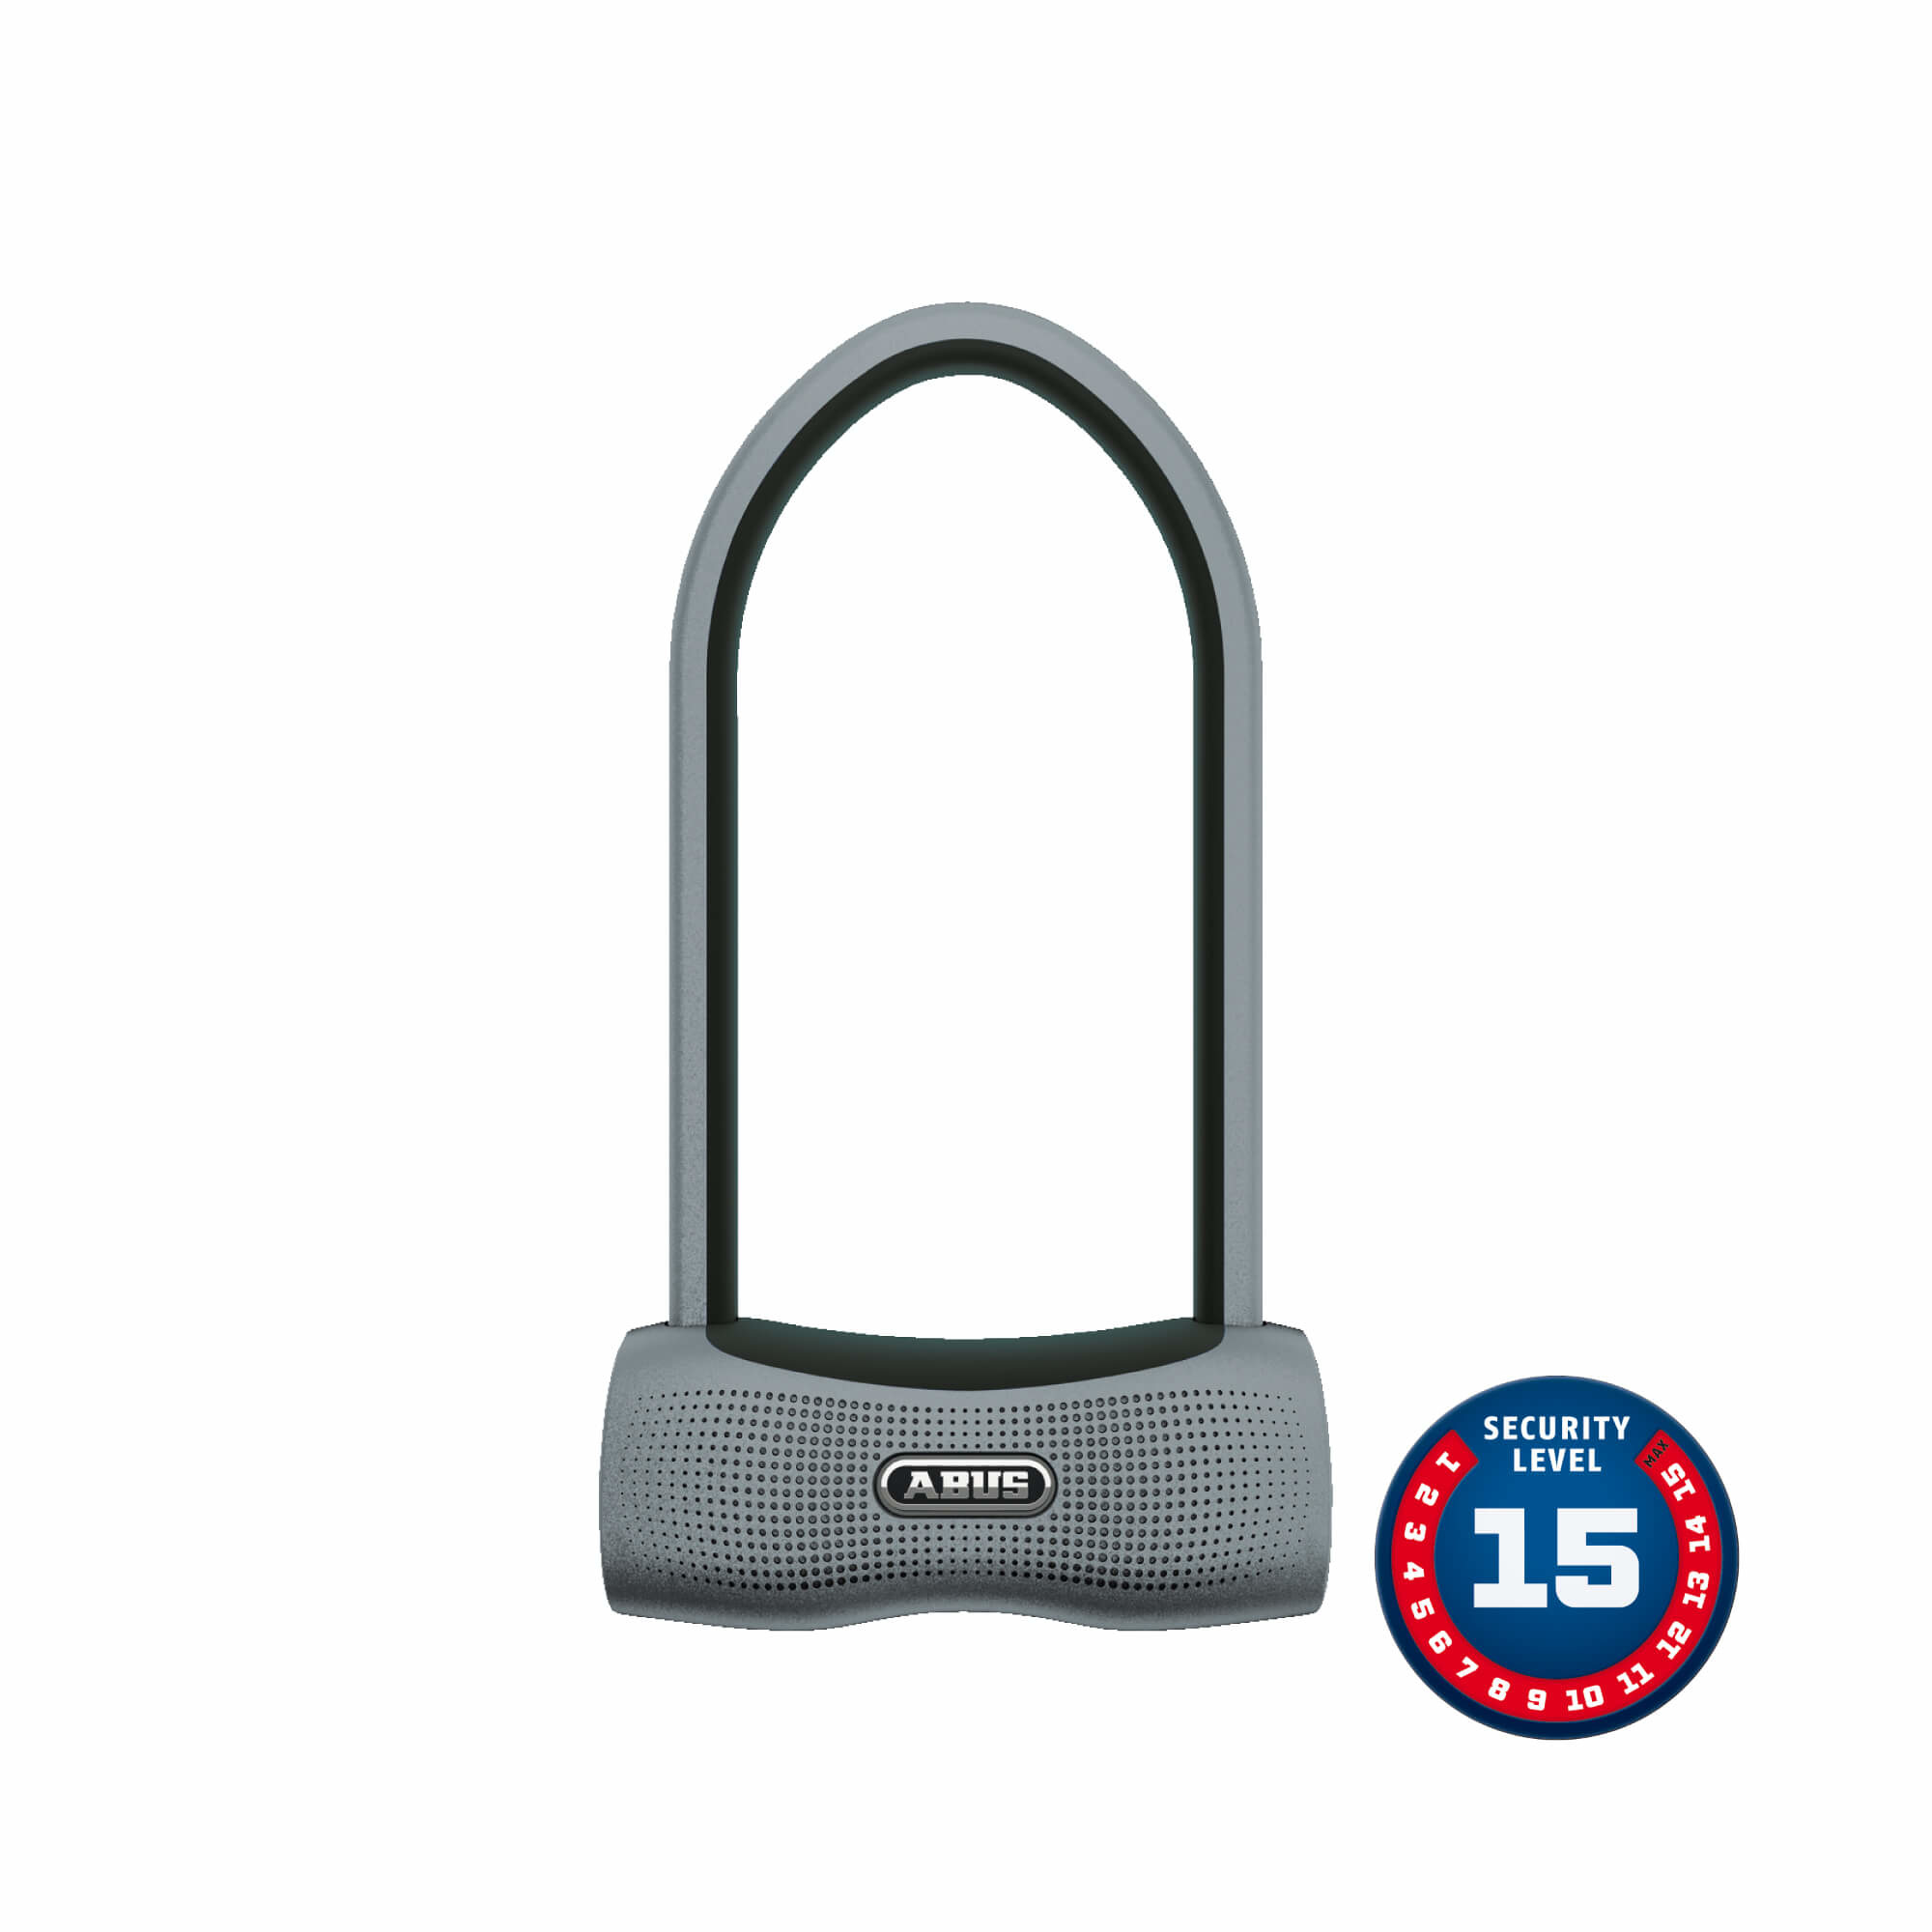 Lock U-Bolt Smart X -770A Alarm 300 + Ush-1